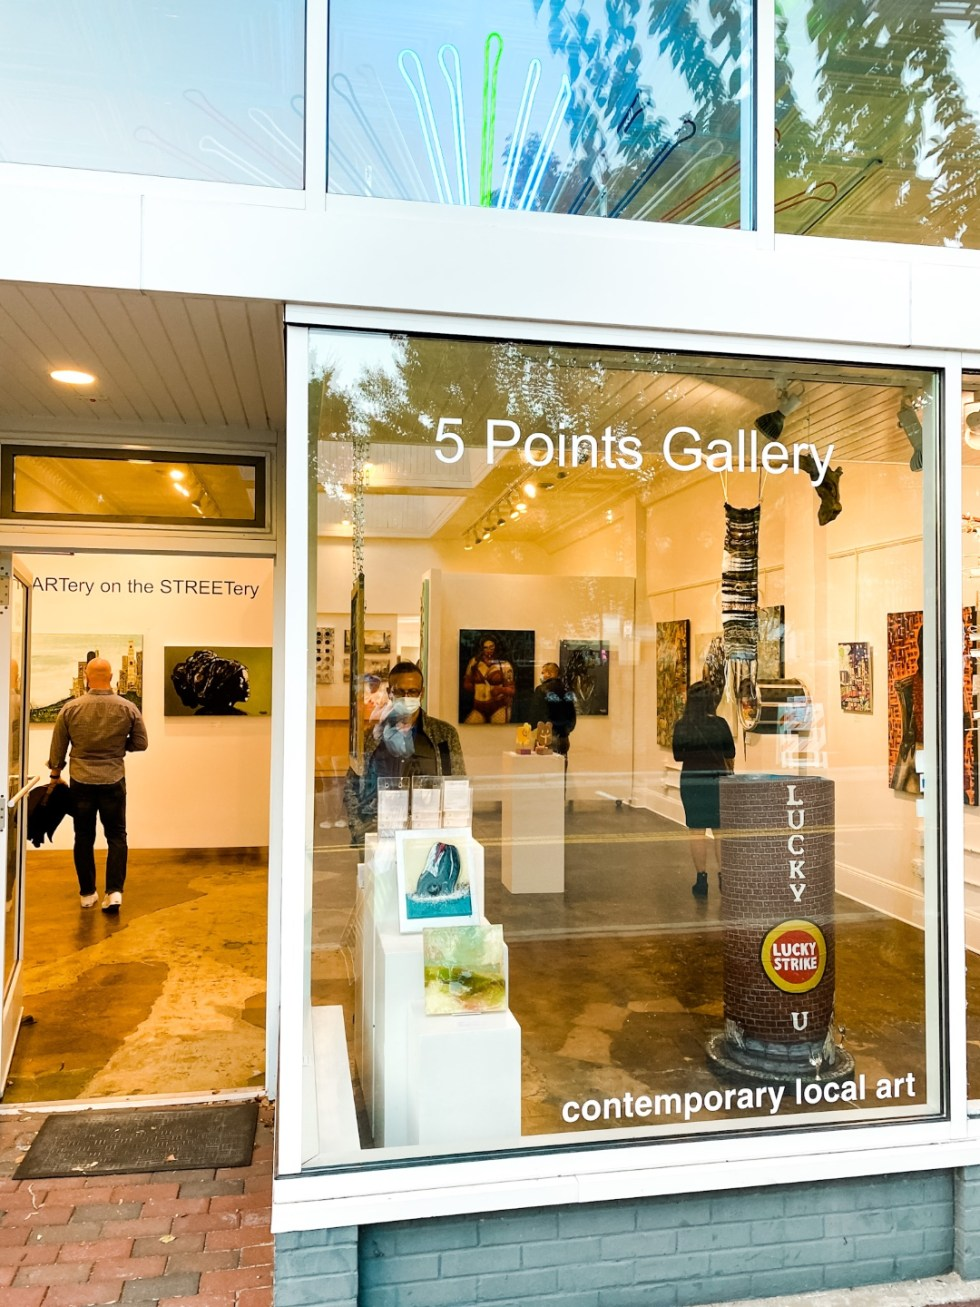 Date Night at the The Streetery in Downtown Durham - I'm Fixin' To - @mbg0112 |The Streetery in Downtown Durham by popular N.C. blog, I'm Fixin' To: image of 5 Points Gallery.